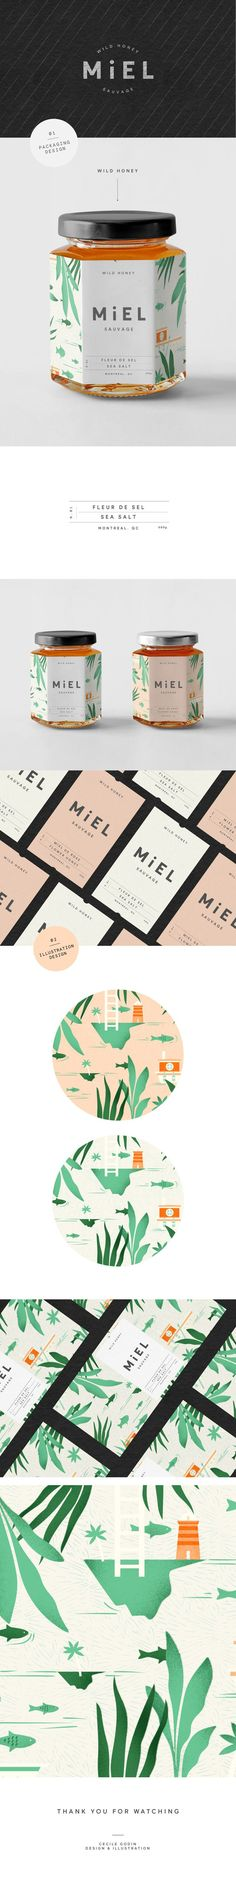 "Popatrz na ten projekt w @Behance: ""Miel Sauvage"" https://www.behance.net/gallery/46446369/Miel-Sauvage"